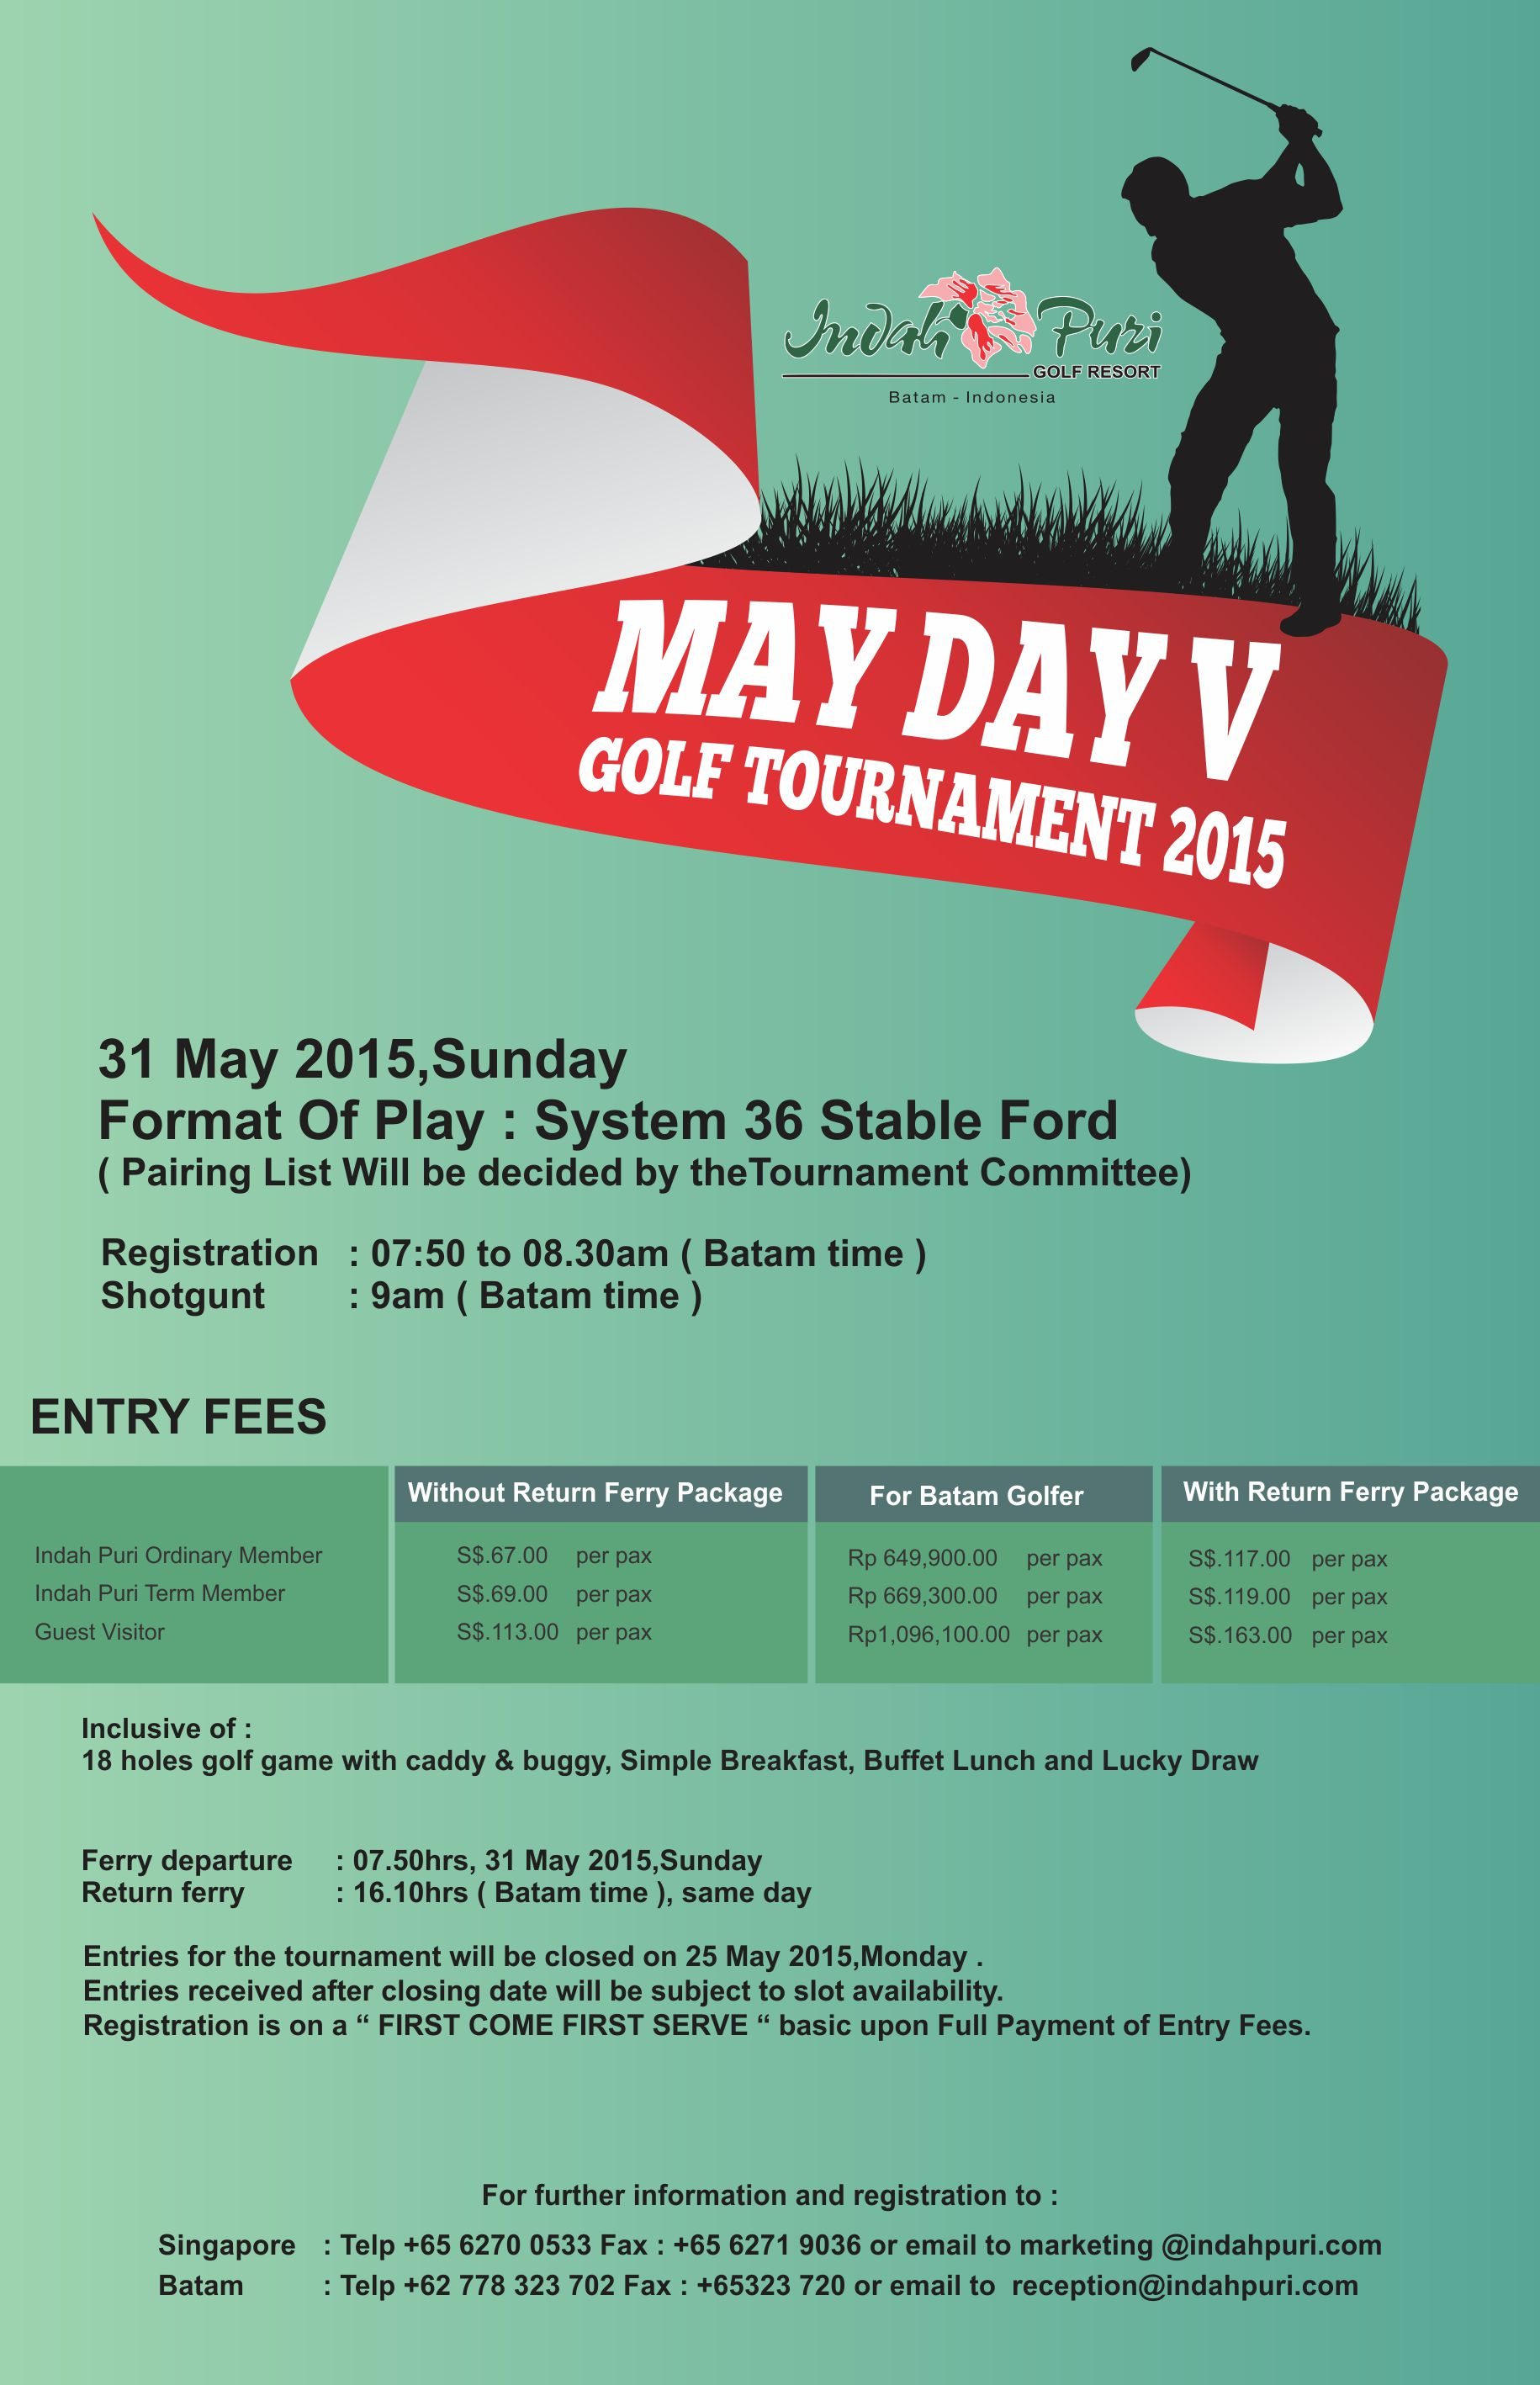 May Day V Annual Golf Tournament